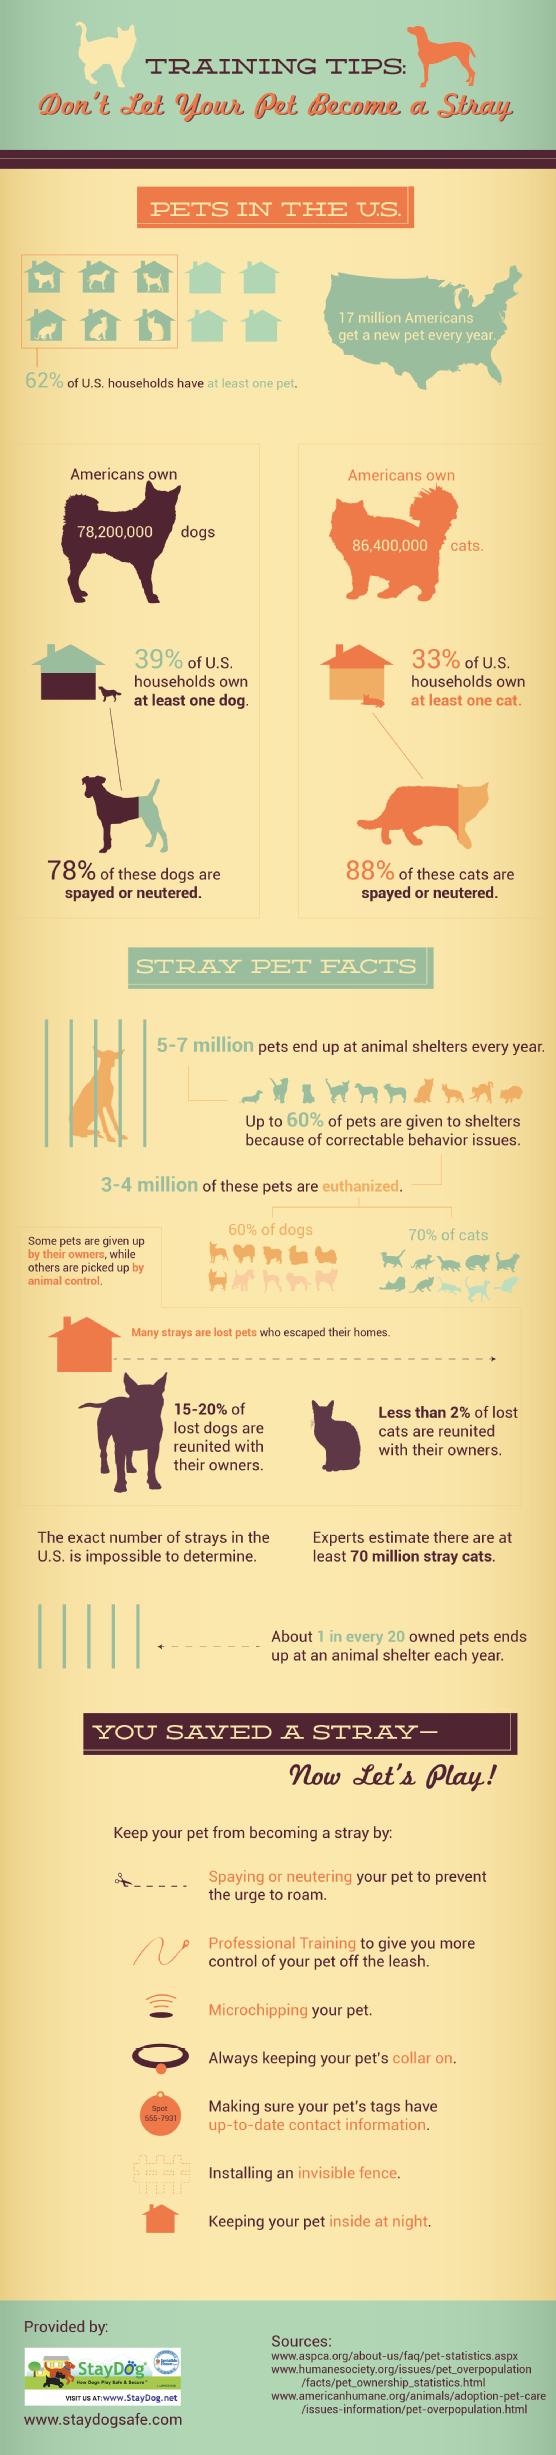 Training Tips: Don't Let Your Pet Become a Stray